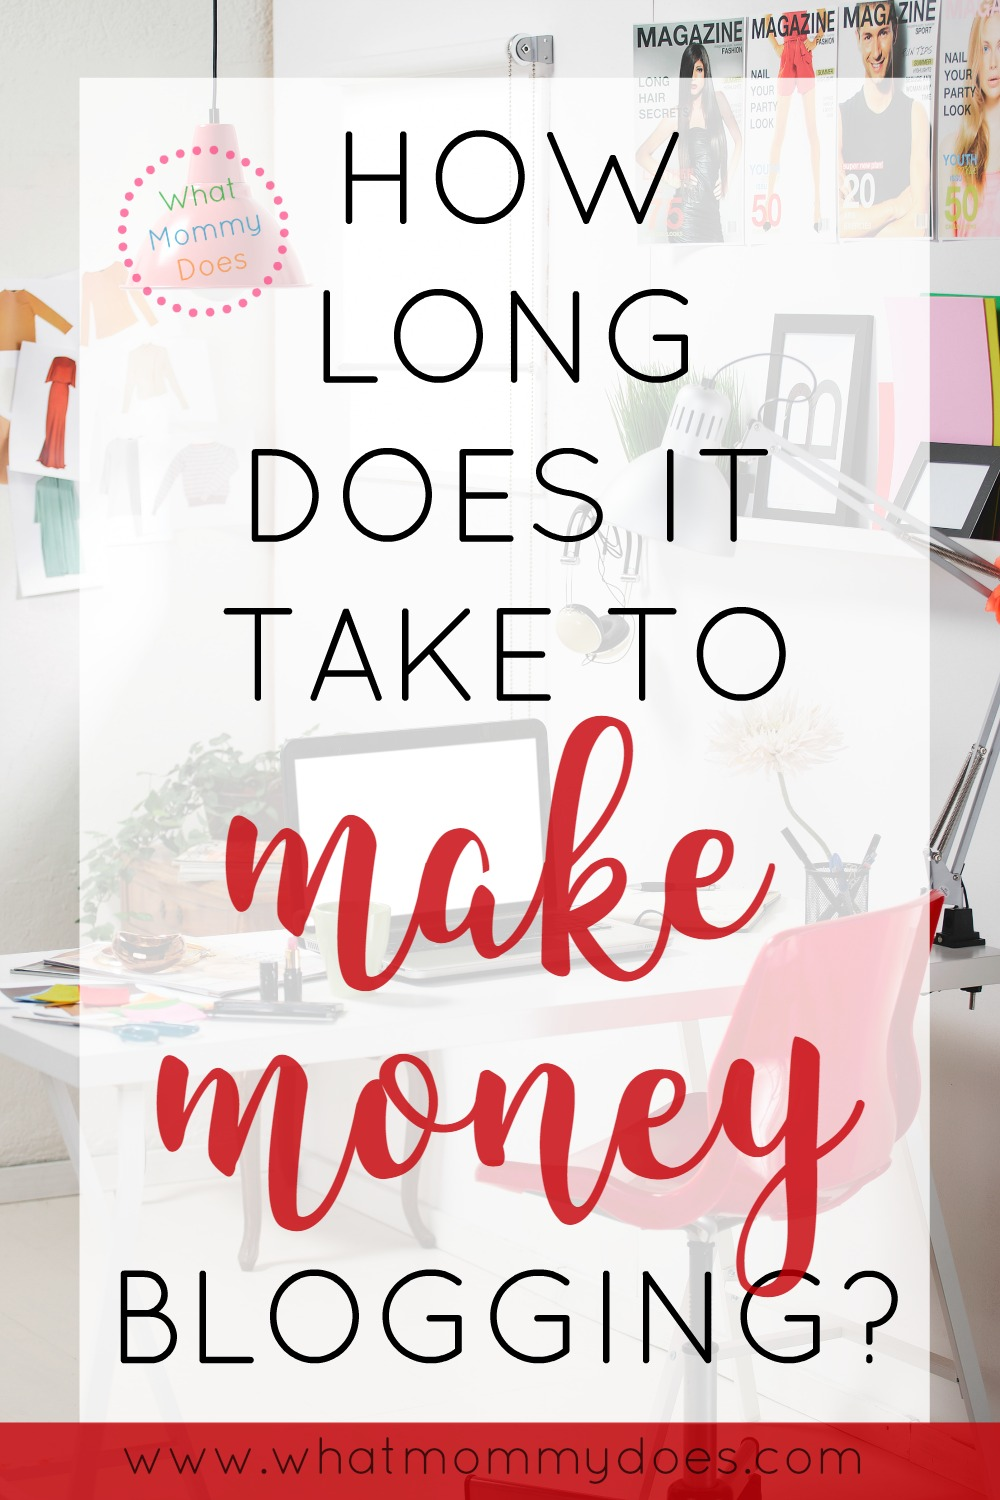 Whether you are a stay-at-home-mom or working full time, if you are serious about blogging for money, then you HAVE to read this advice! This blogger goes over how to get started blogging if making extra cash if your goal. You must get these things right if you want to get paid for your ideas! | online entrepreneur, make money blogging, earn extra money, how do you start a blog that makes income